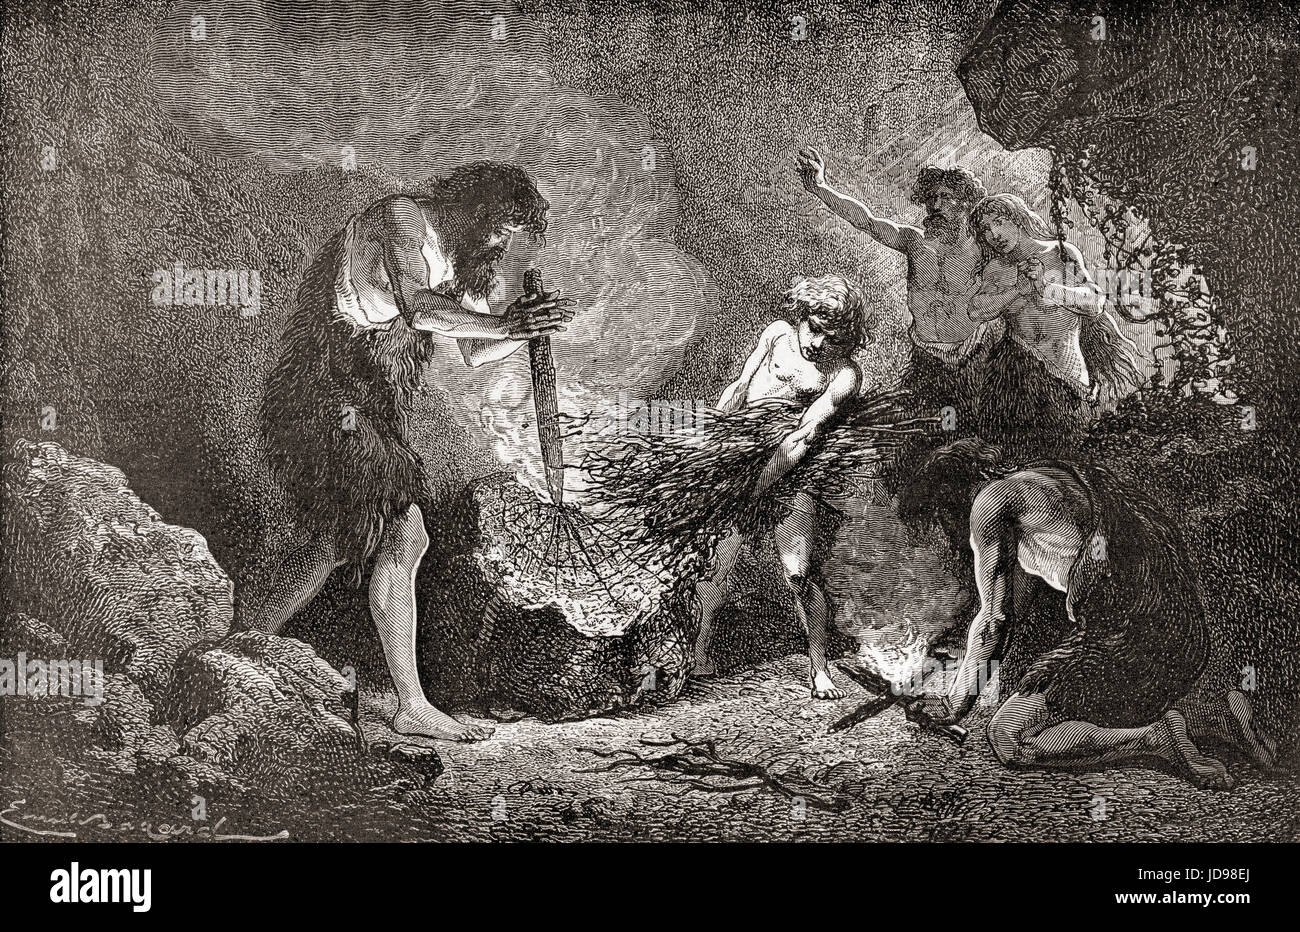 Stone age man discovers fire.  From L'Homme Primitif, published 1870. - Stock Image